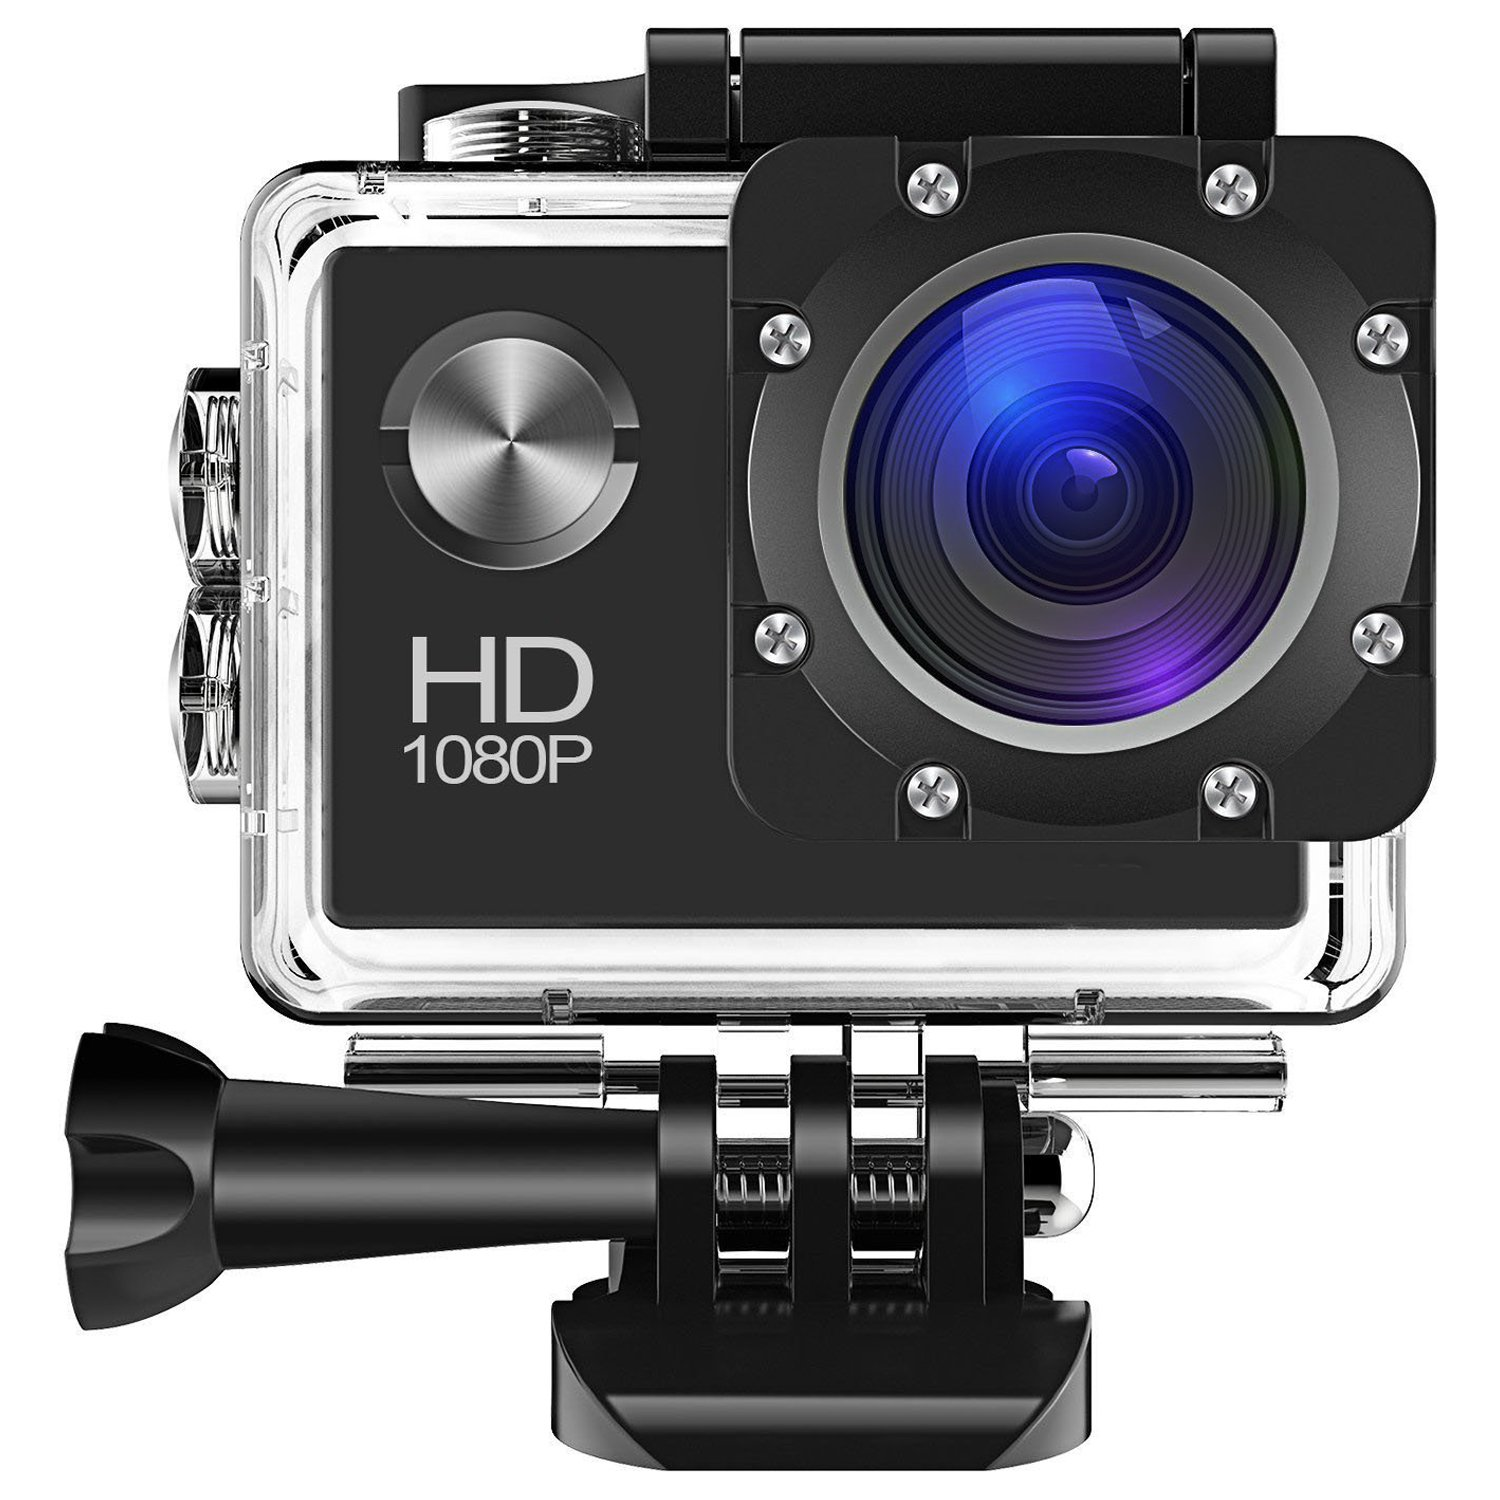 Action Camera Underwater Cam WiFi 1080P Full HD 12MP Waterproof 30m 2'' LCD 140 degree Wide-angle Sports Camera with Rechargeable 1050mAh Batteries and Mounting Accessory Kits (Black)